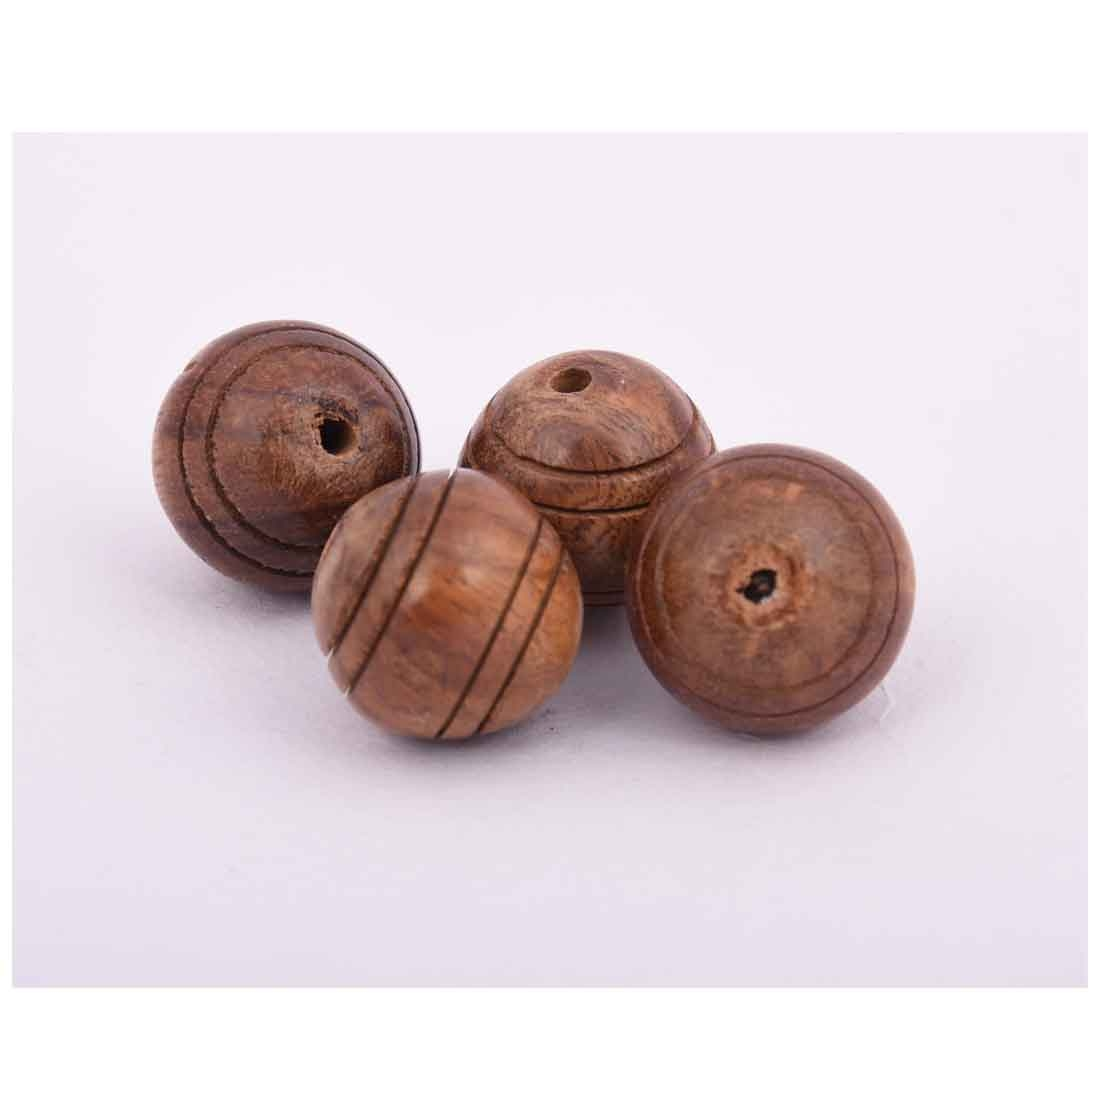 Beads India 1700015 Handcrafted Wooden Beads/Discounts Above 500 pcs